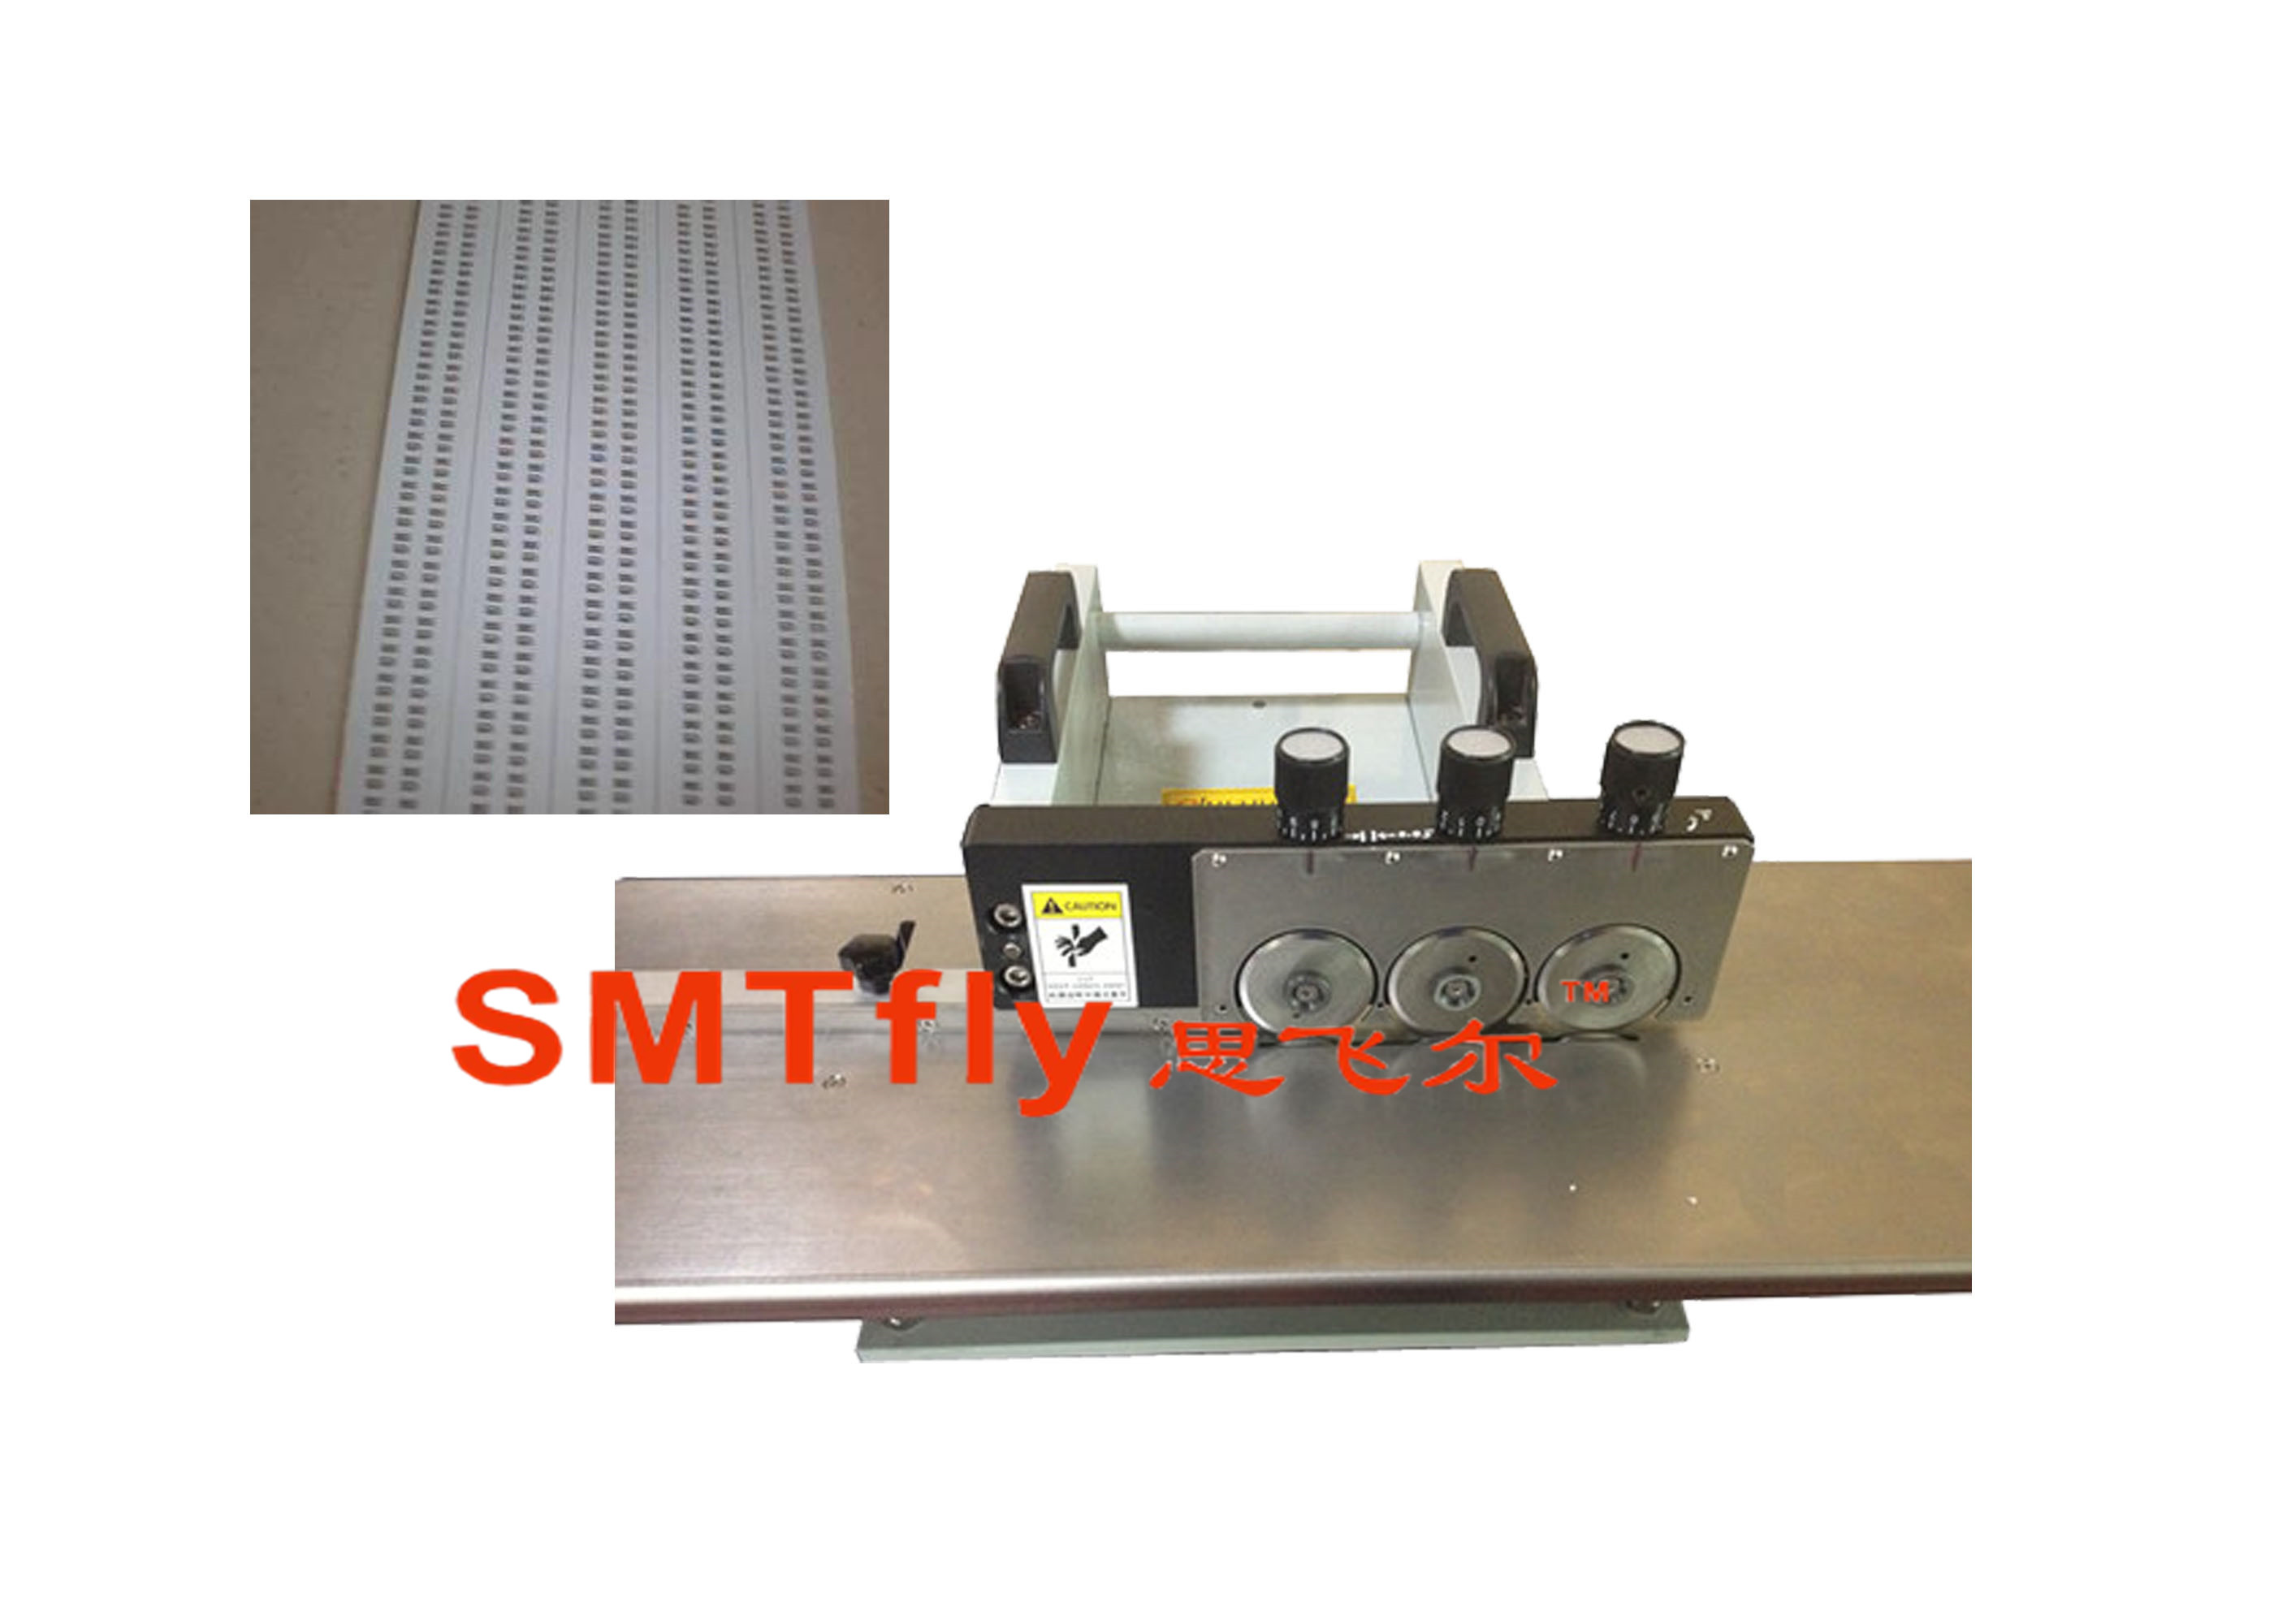 PCB Depanelling for Aluminum Boards,SMTfly-3S